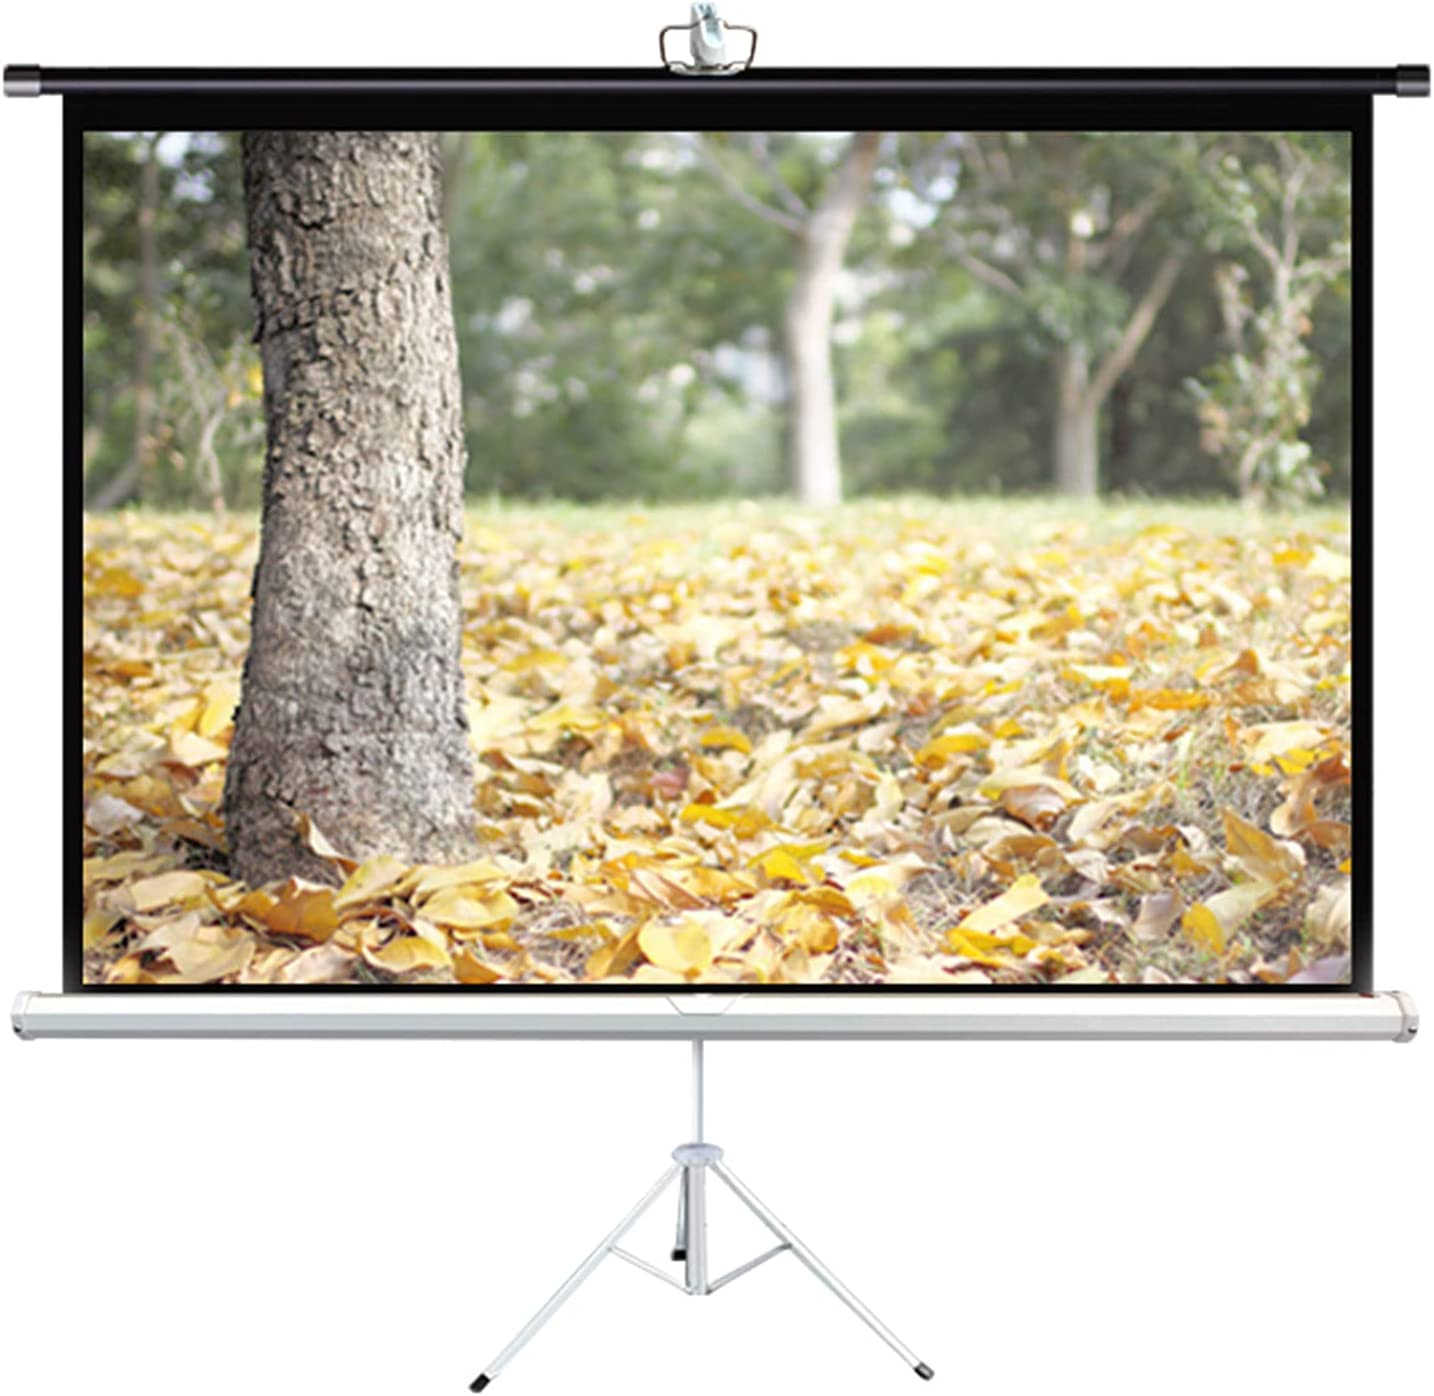 LIUU Projector Screen with Stand 60 Inches Pro Portable Popular brand in the world 4:3 Many popular brands 16:9